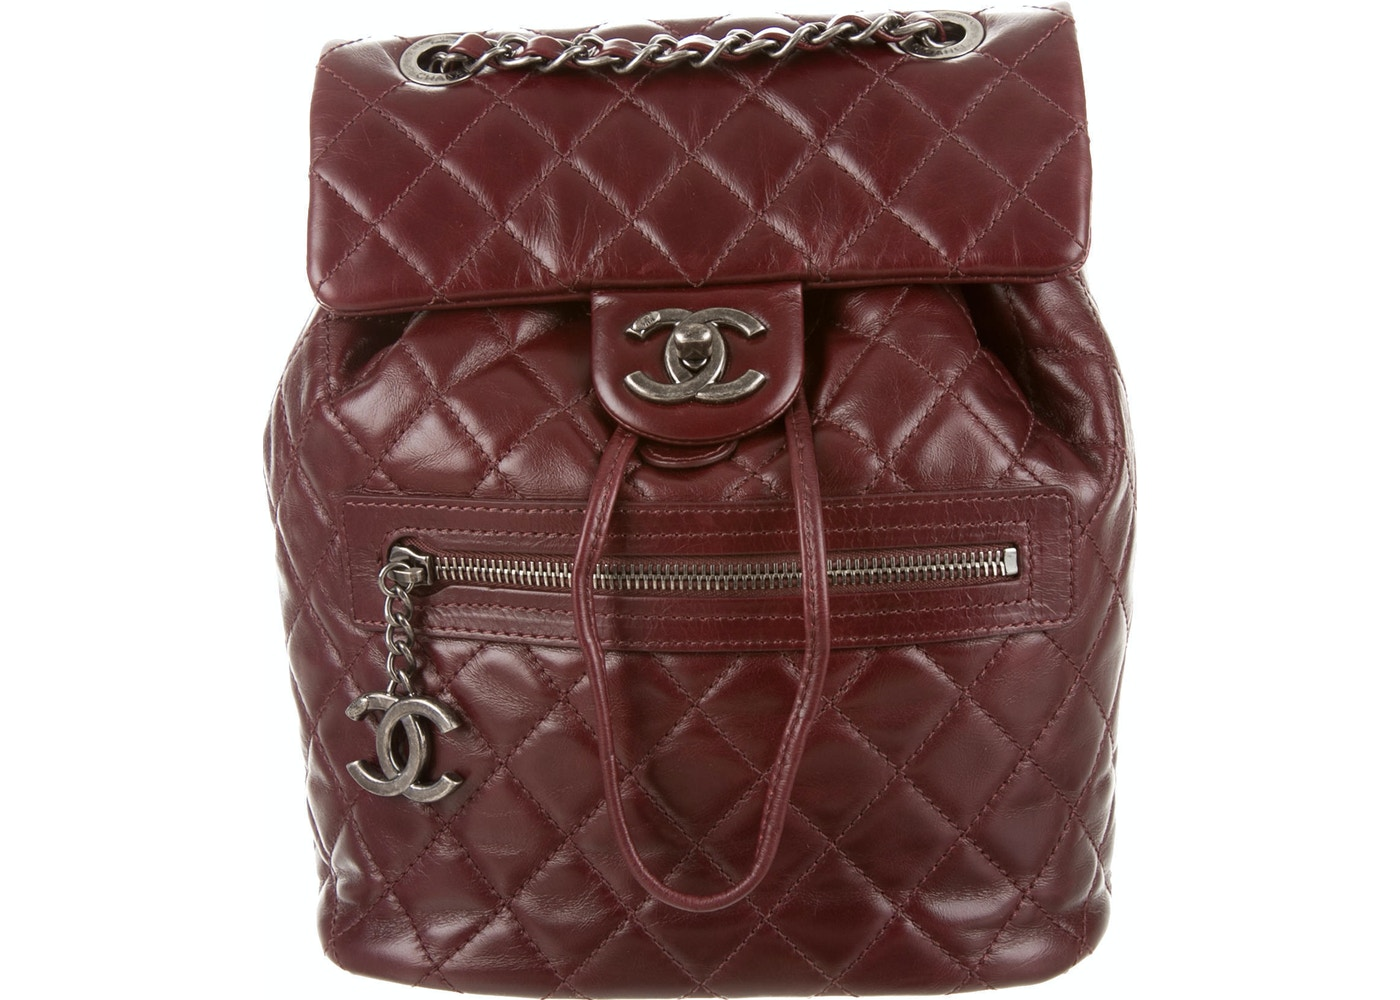 128ce95924c8 Sell. or Ask. View All Bids. Chanel Mountain Backpack Quilted Glazed Small  Bordeaux